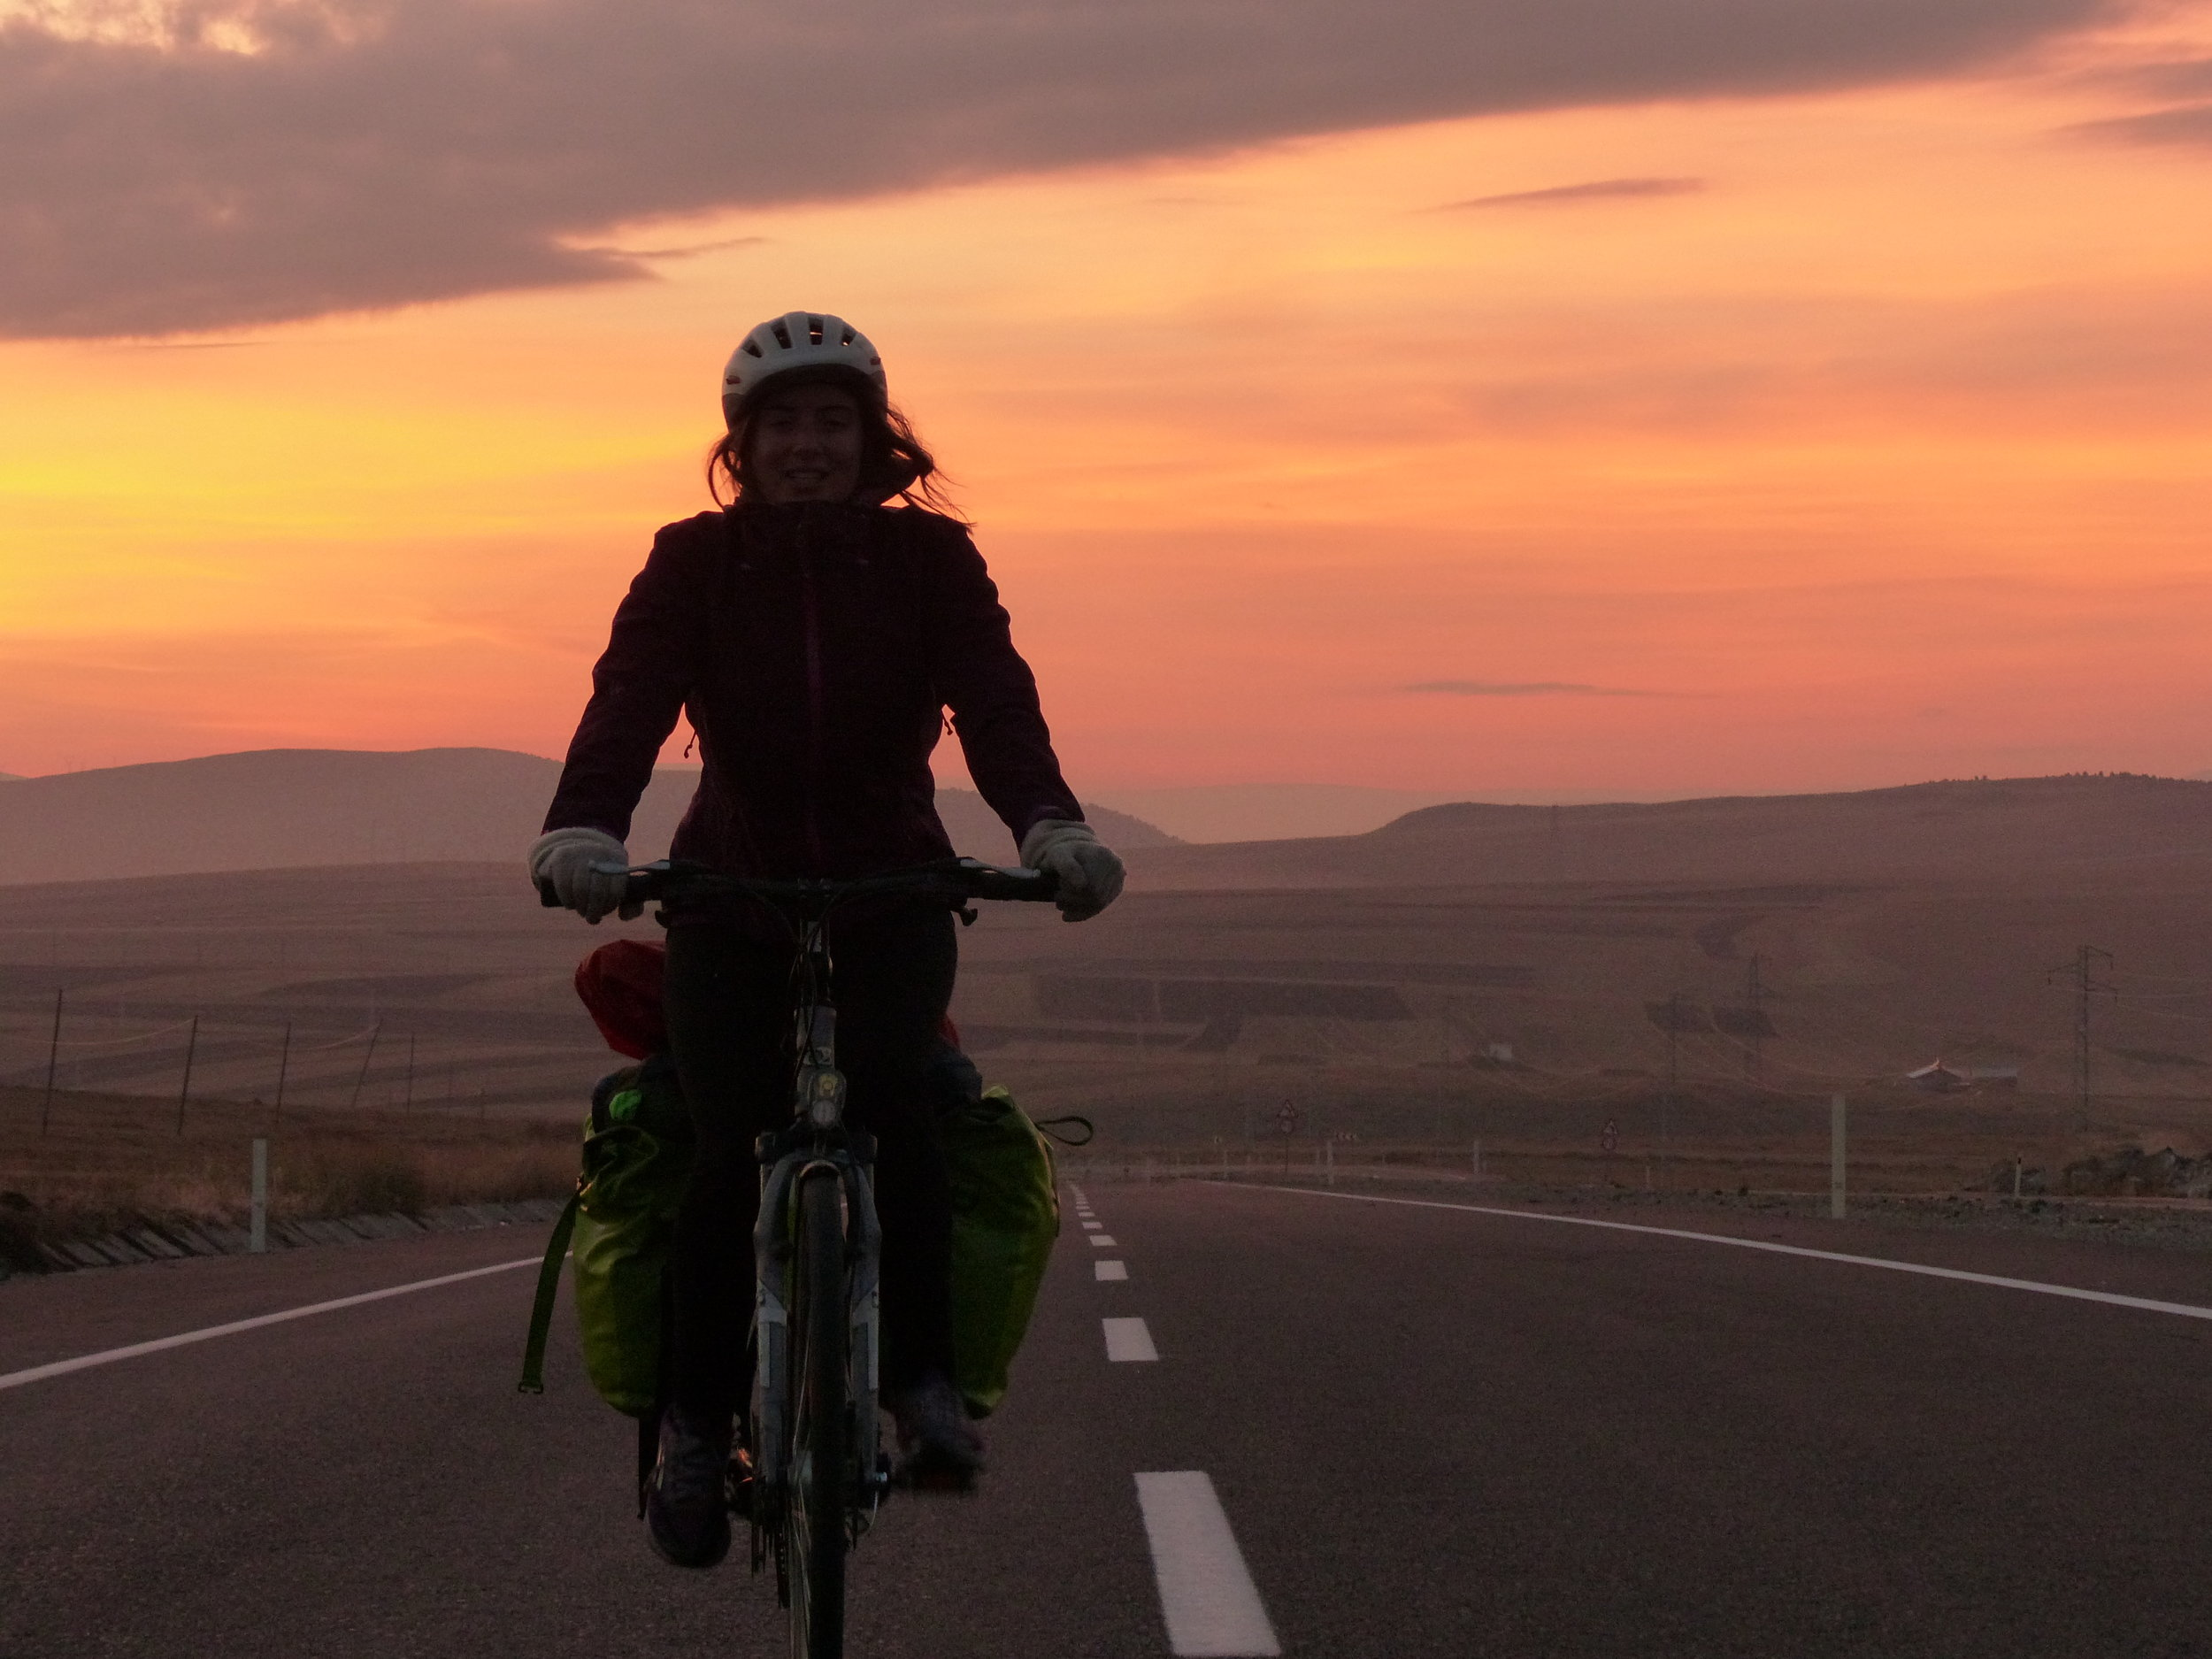 Our final night cycling in Turkey, the perfect farewell.